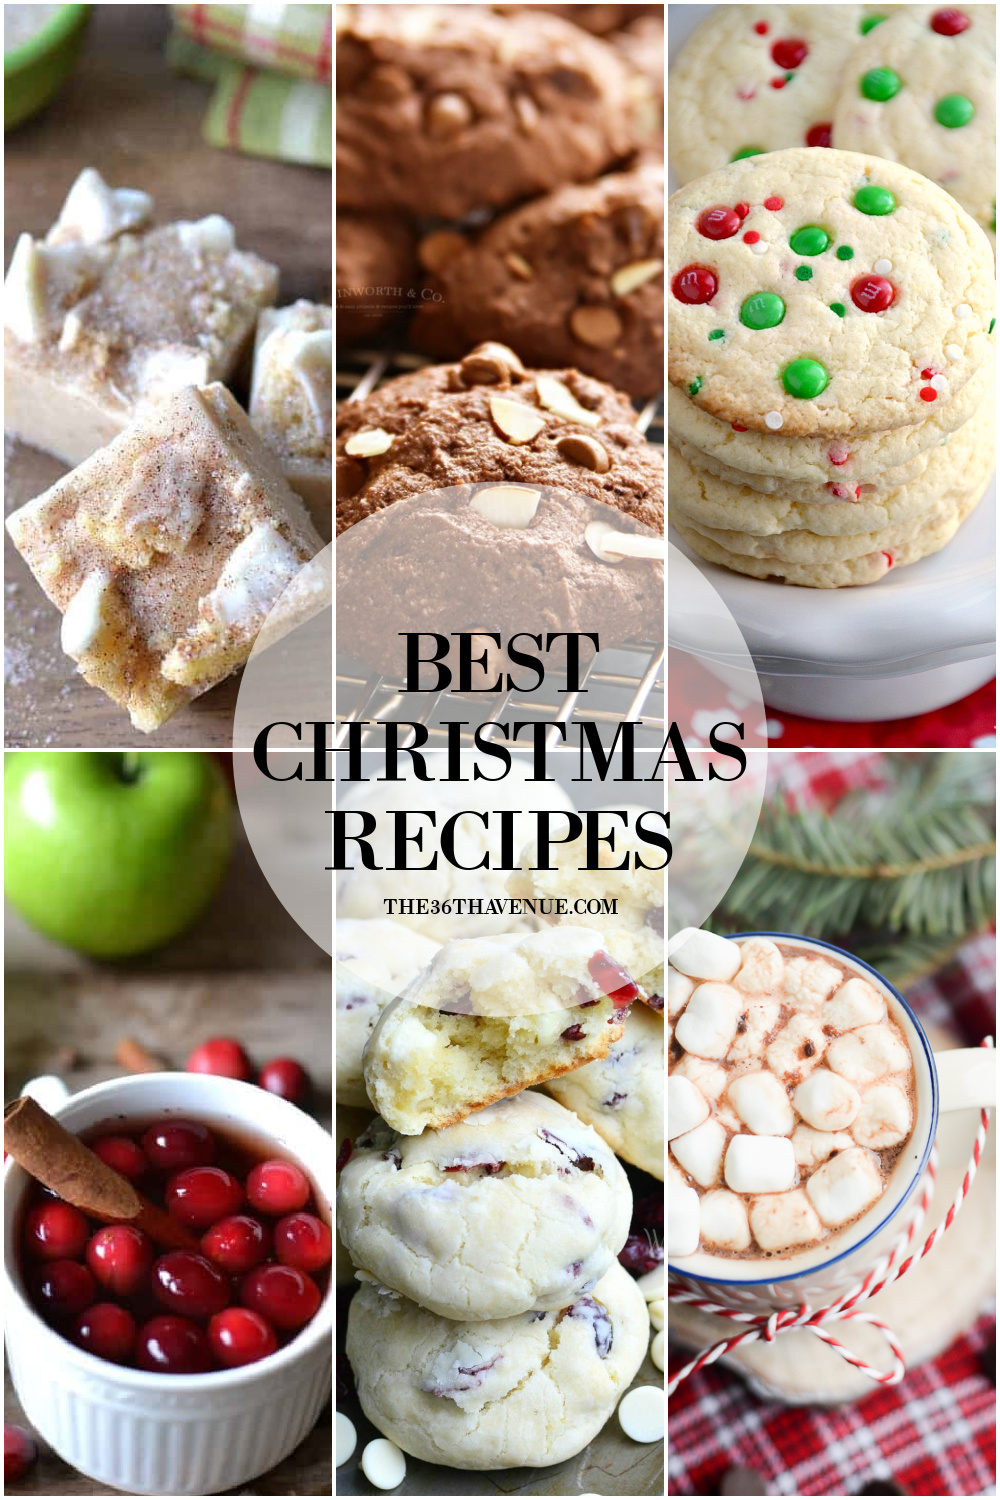 BEST CHRISTMAS RECIPES AT THE36THAVENUE.COM